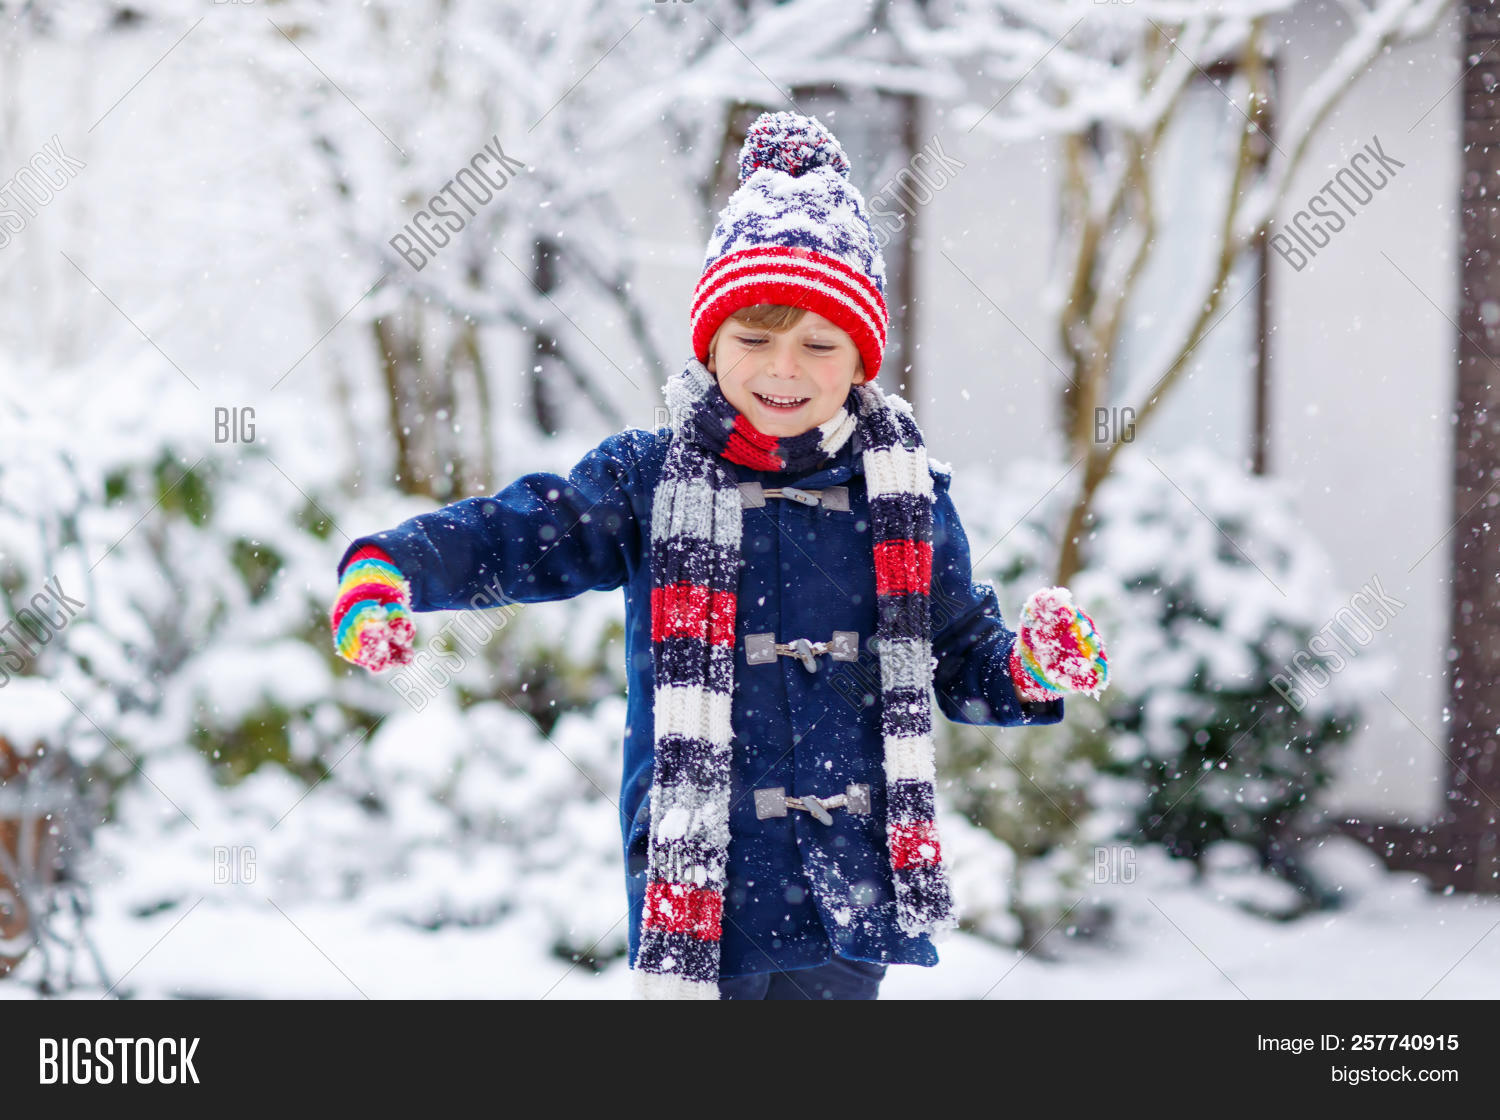 Cute Little Funny Child In Colorful Winter Fashion Clothes Having Fun And  Playing With Snow 965968d04